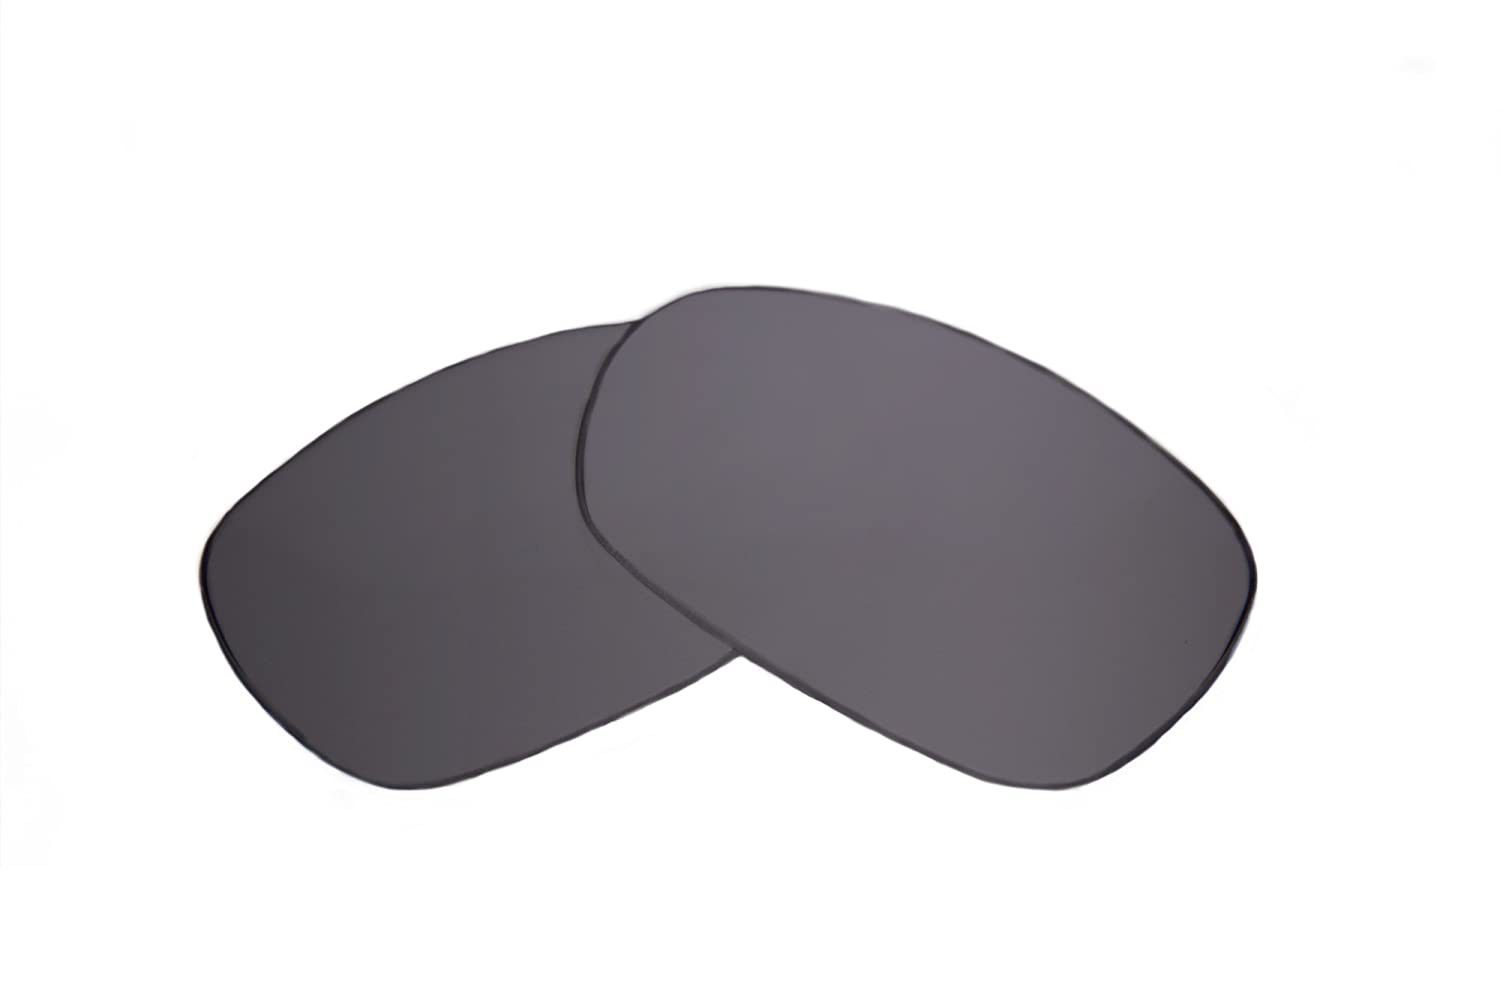 SFX Replacement Sunglass Lenses fits Dragon GG 61mm Wide